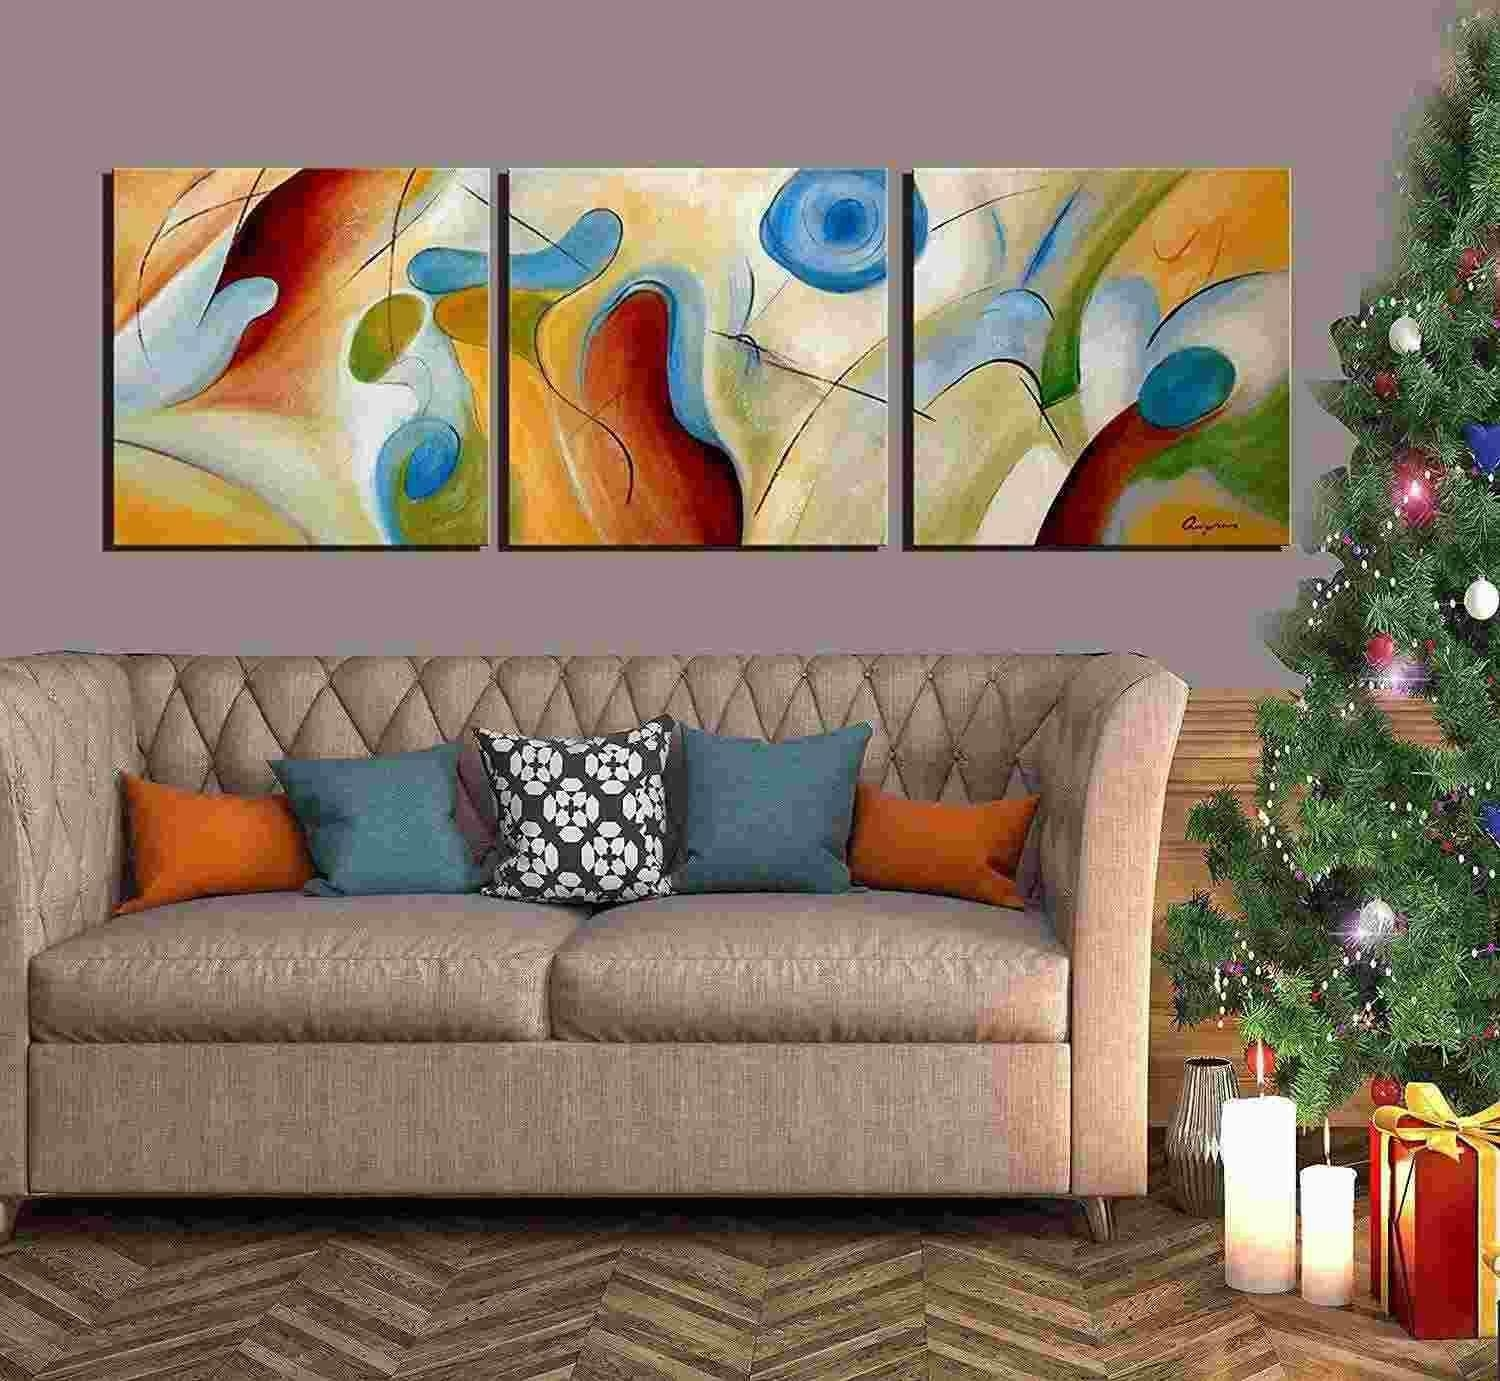 2018 100% Hand Painted Abstract Oil Painting On Canvas Dream inside Abstract Oil Painting Wall Art (Image 3 of 20)